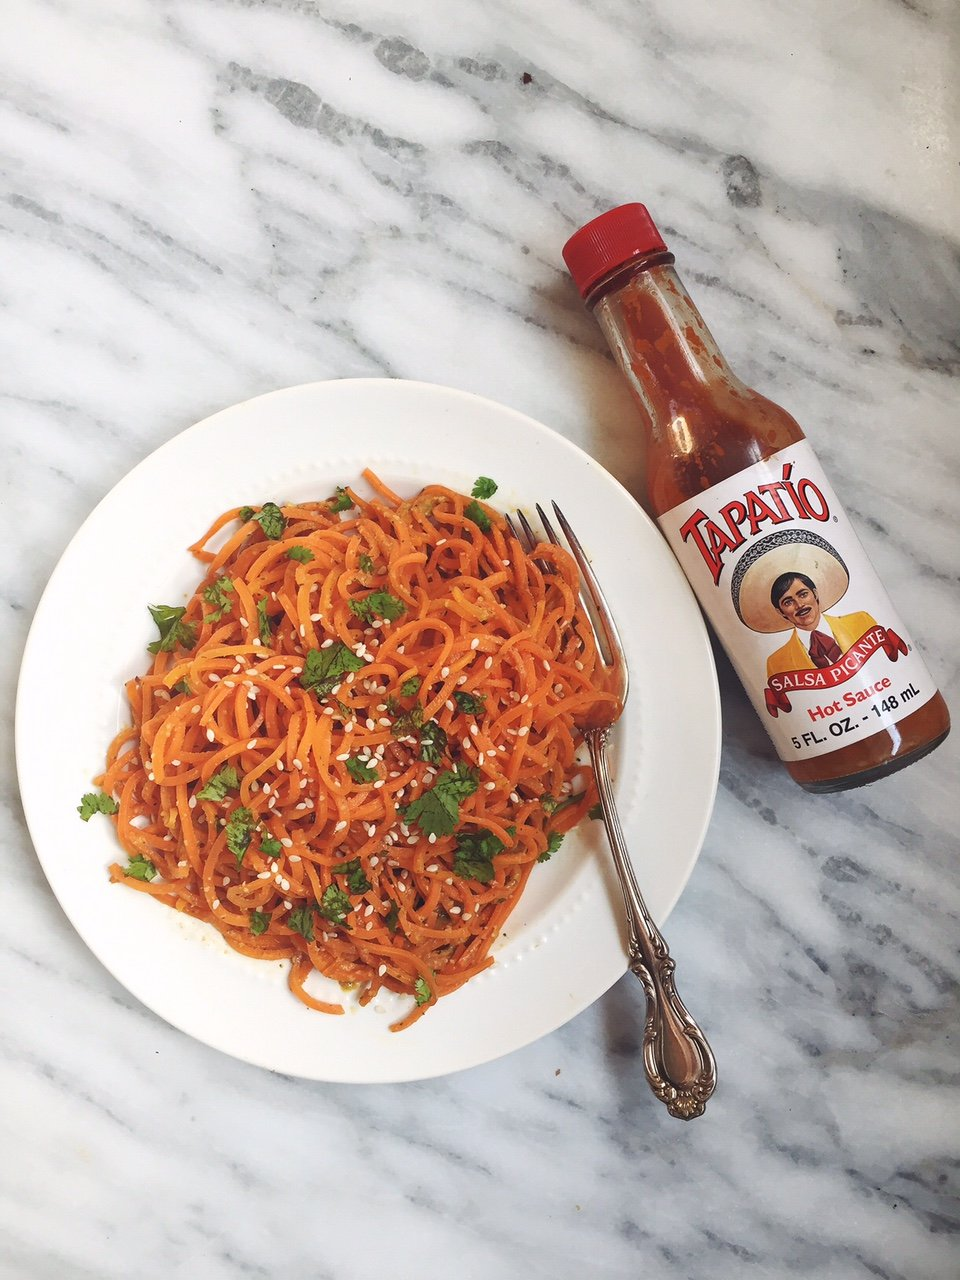 sweet potato noodles on a plate next to hot sauce